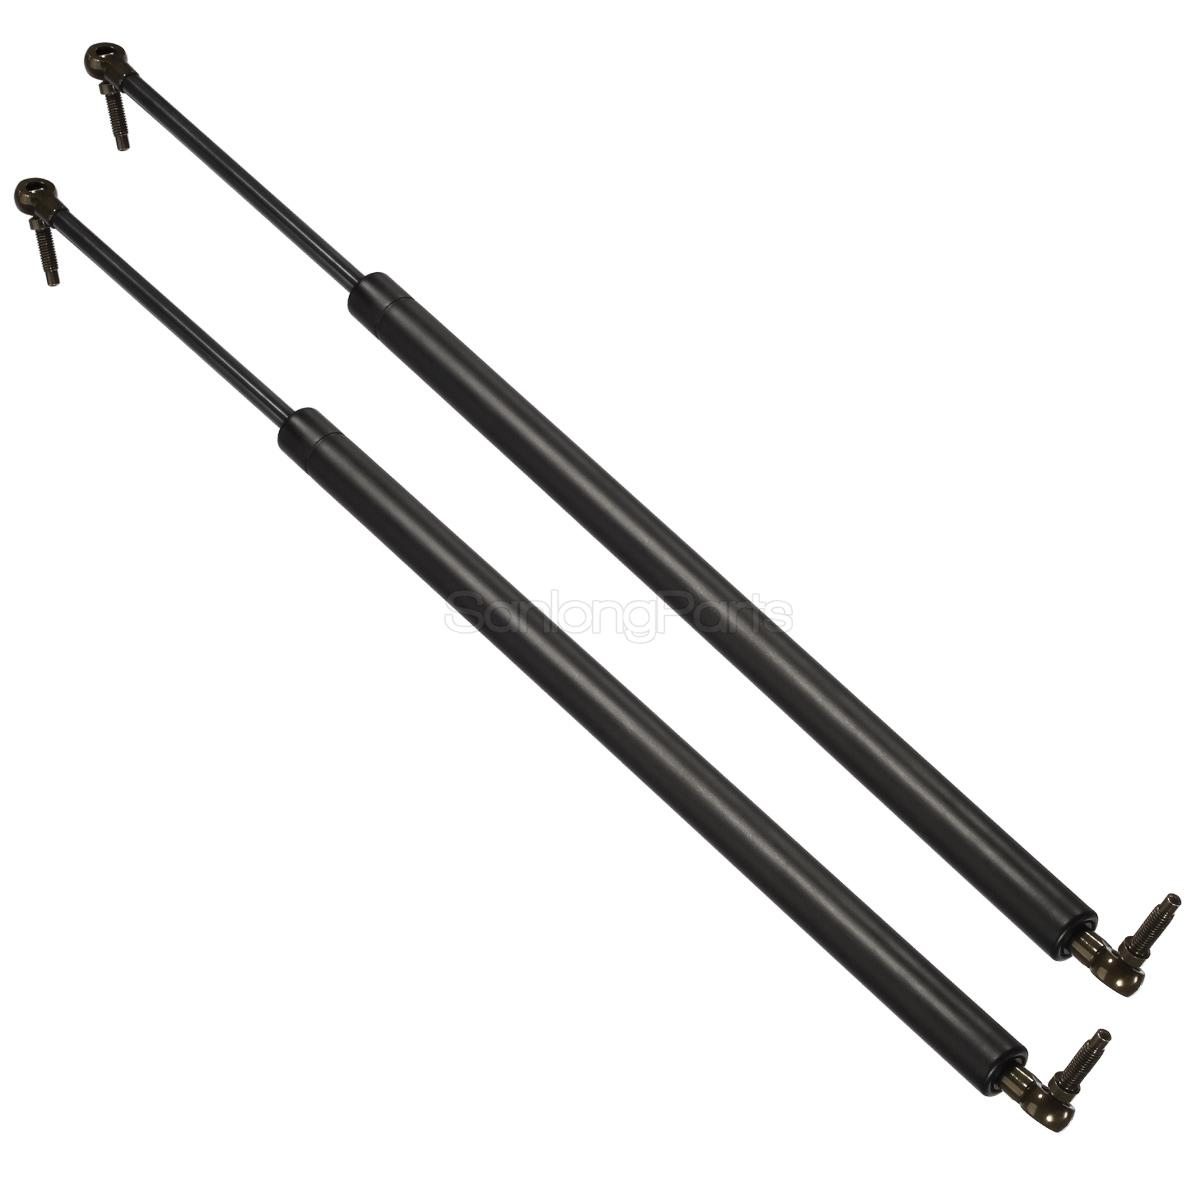 2pcs Hatch Gas Charged Lift Support Fits 2001-2007